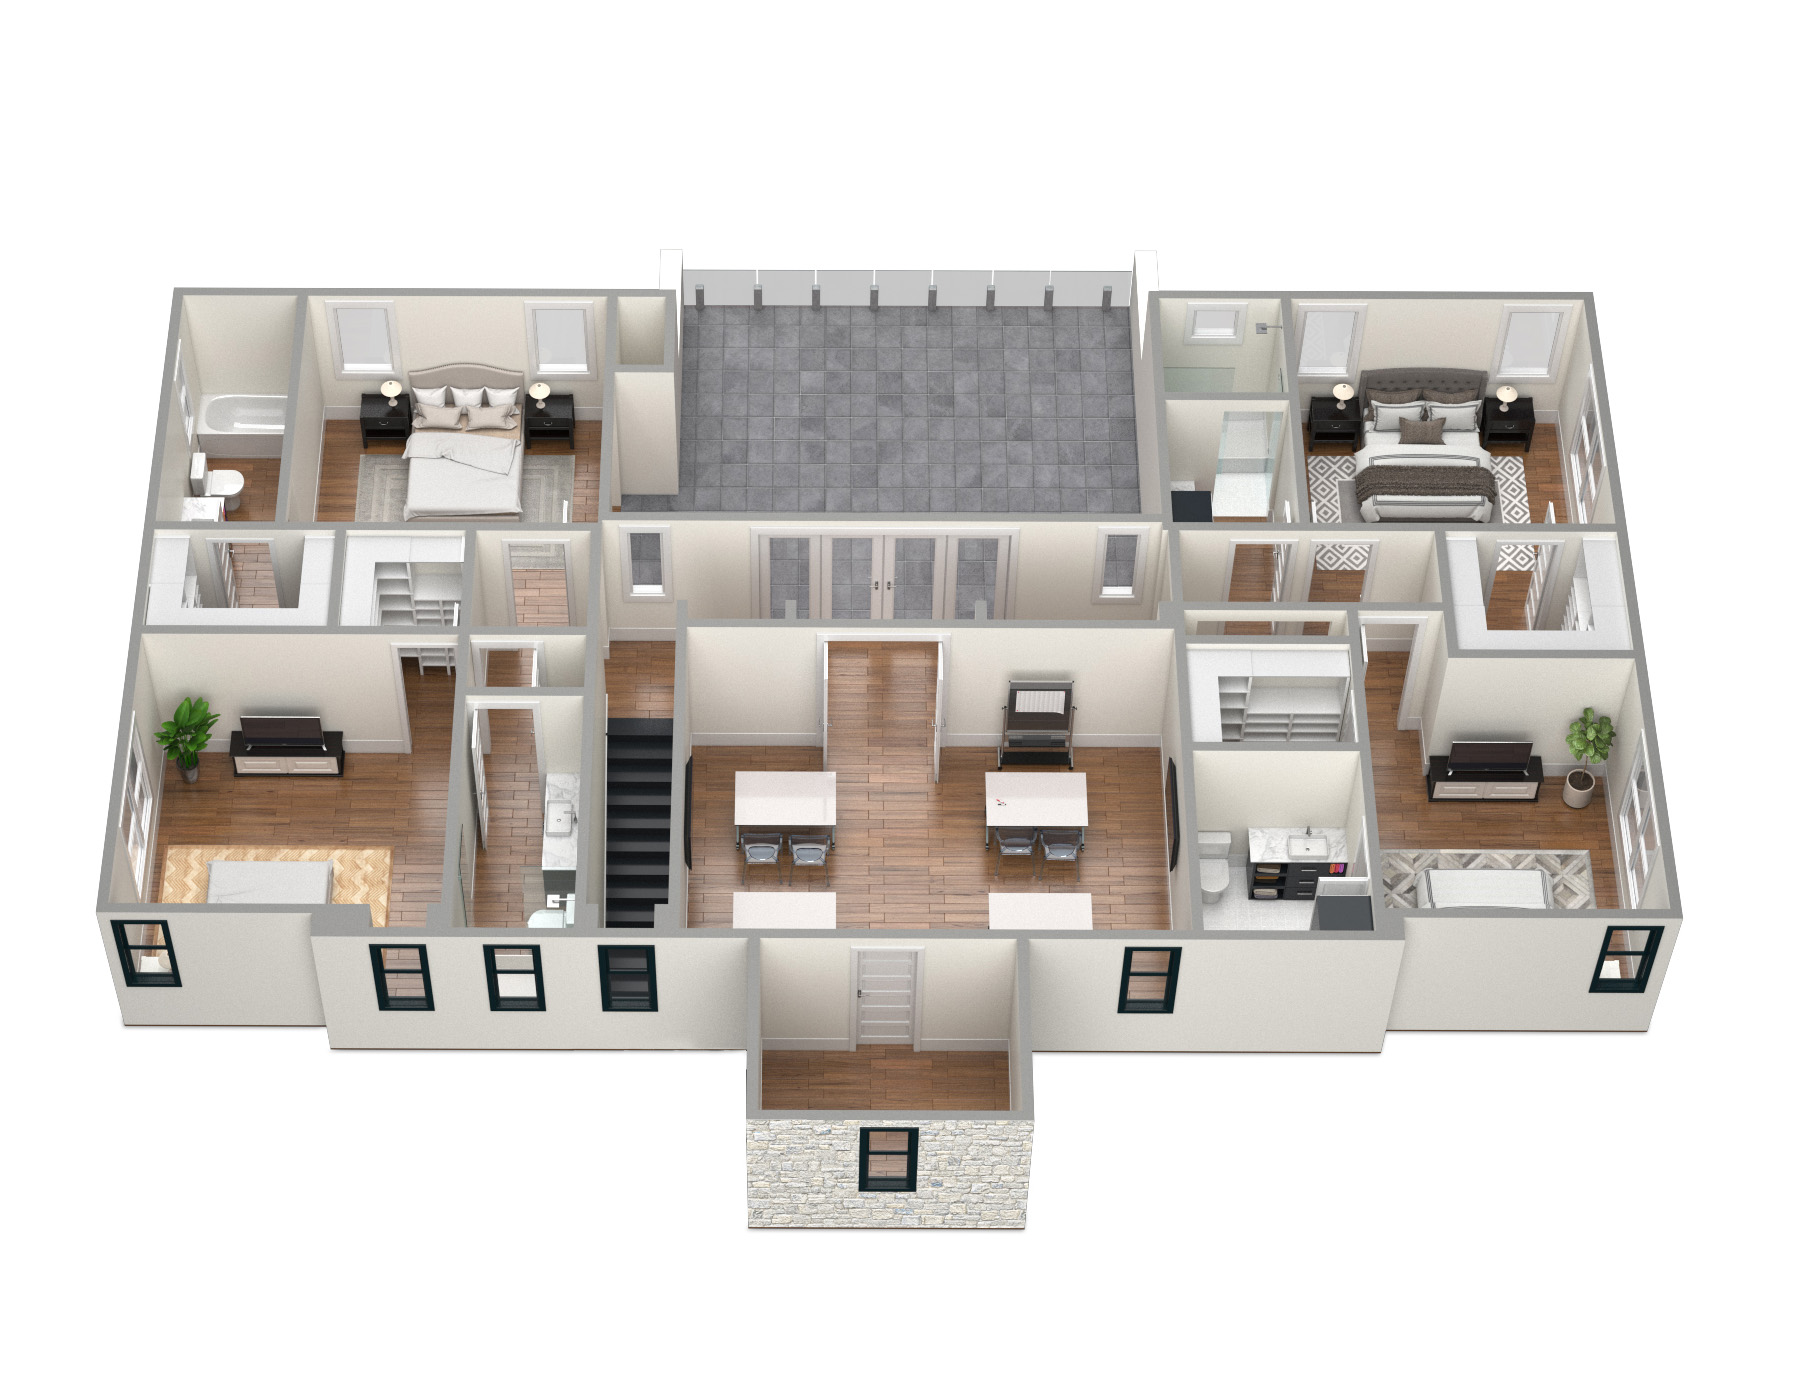 SawyerSound Sounding 2nd floor 3D floorplan  by Tsymbals